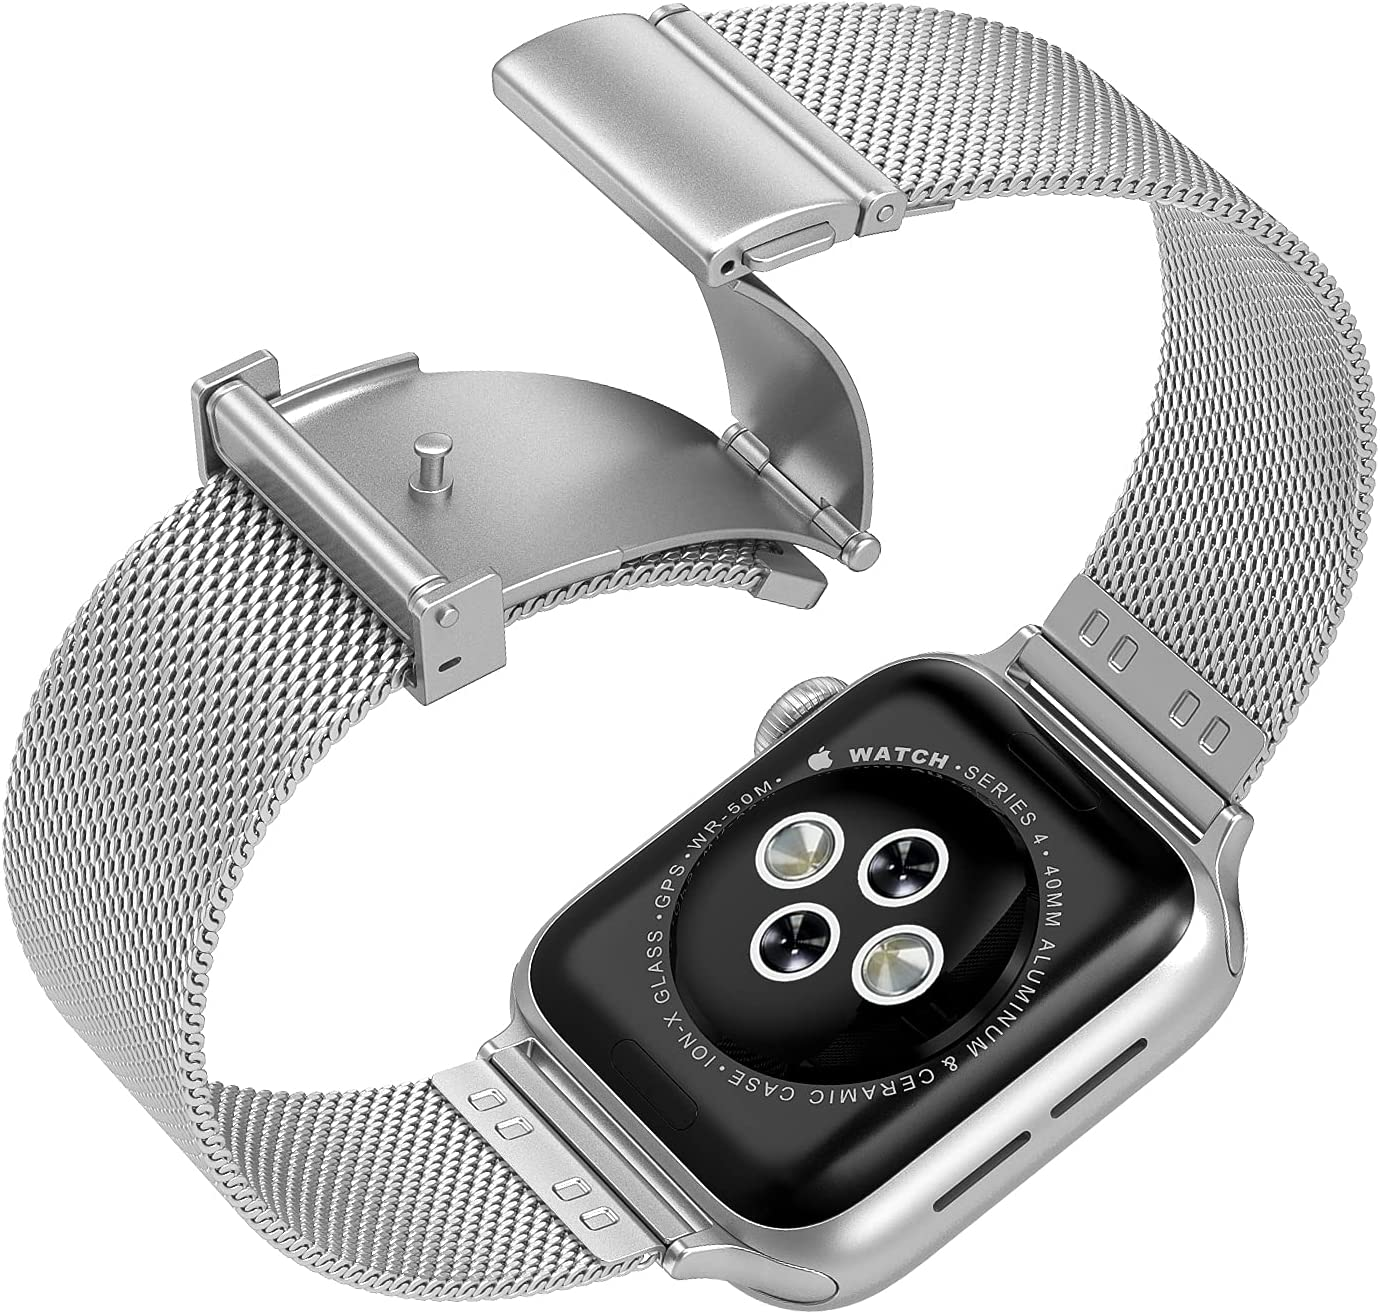 Compatible with Apple Watch Band 42mm 44mm,Upgraded Version Stainless Steel Bands Business Replacement iWatch Strap for Apple Watch Series 6/5/4/3/2/1/SE Sport Edition Women Men, Silver